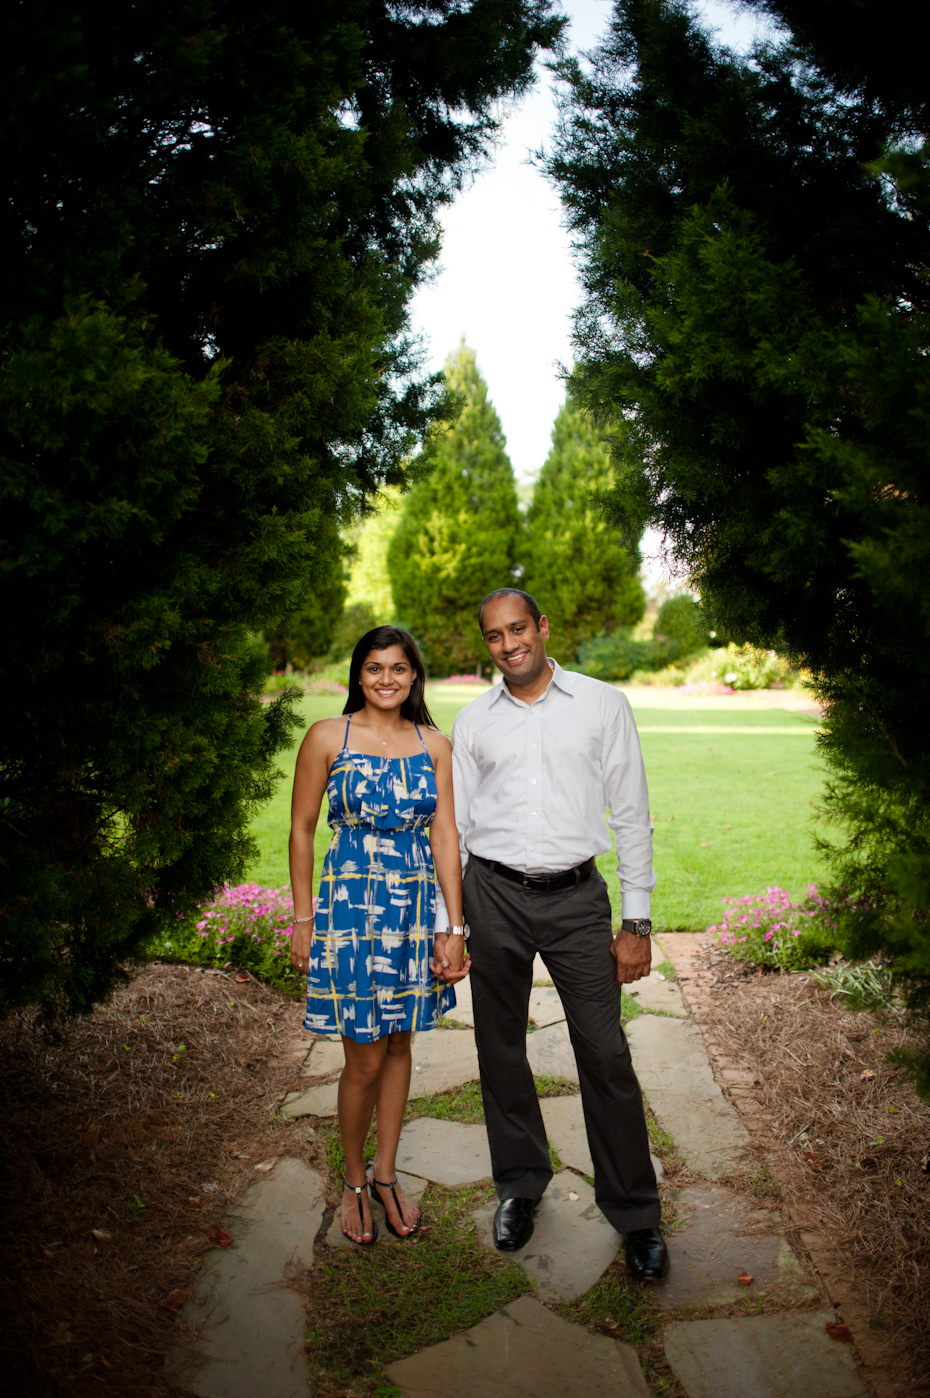 Brumby Gardens Engagement Pictures